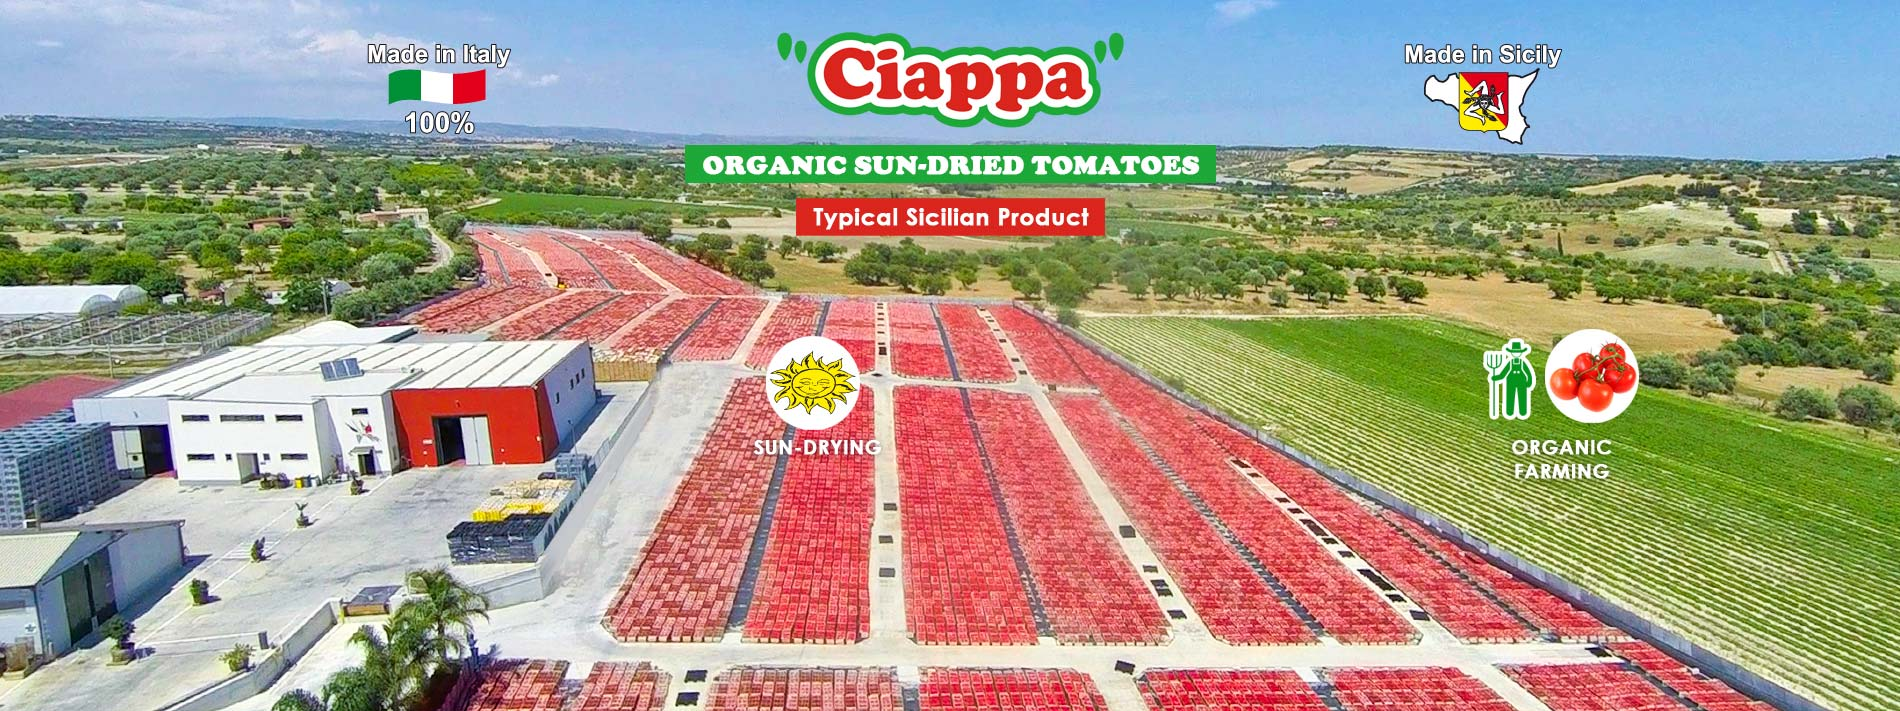 Sun-dried tomatoes - organic farming 100% Made in Sicily by Agriblea